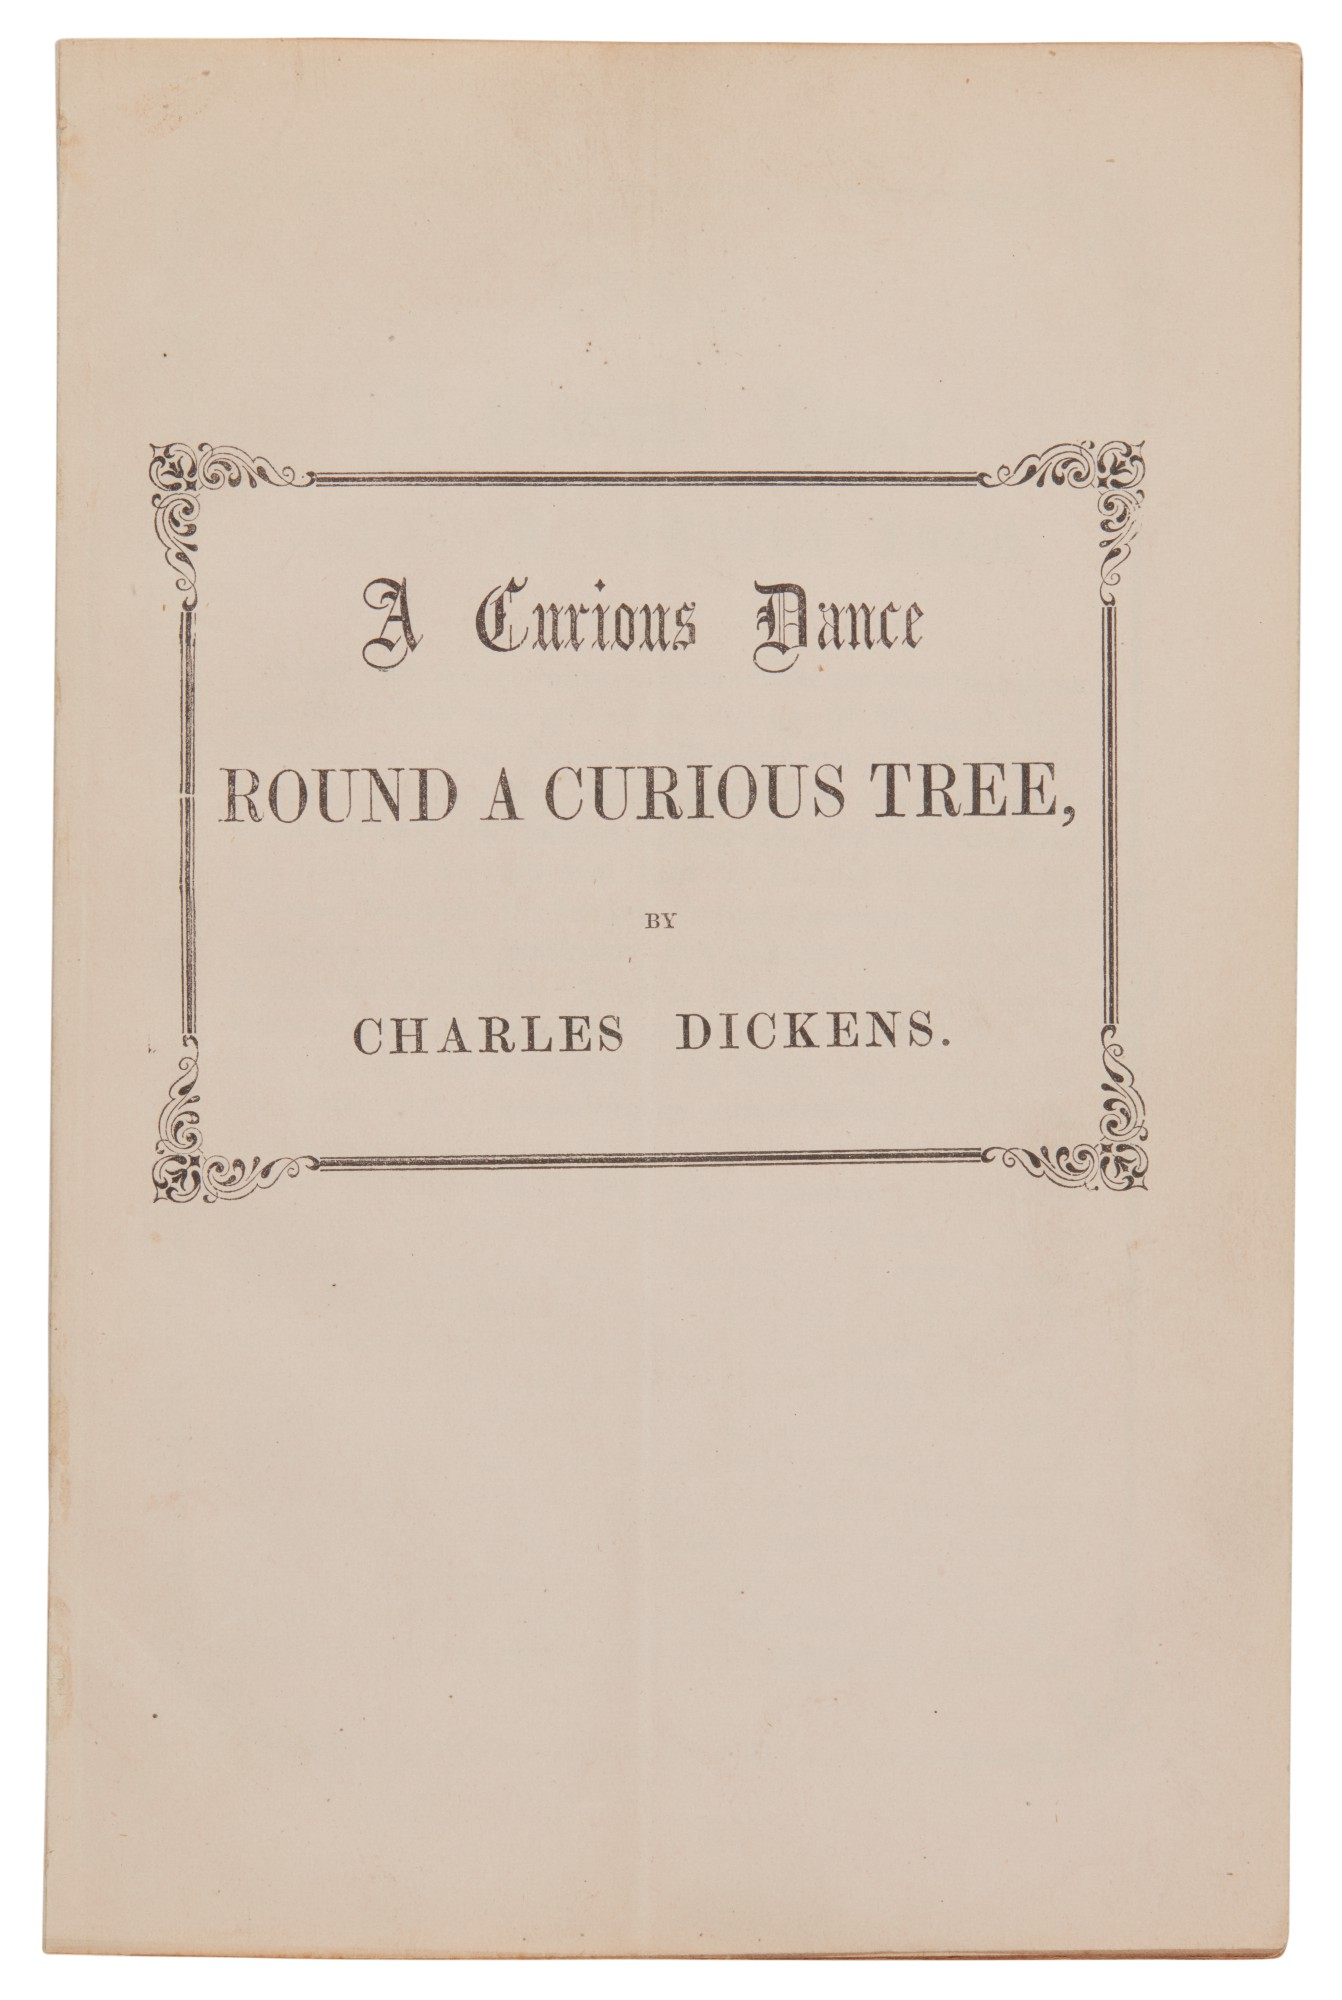 Dickens, A Curious Dance round a Curious Tree, [1860], first edition, second issue, with original envelope